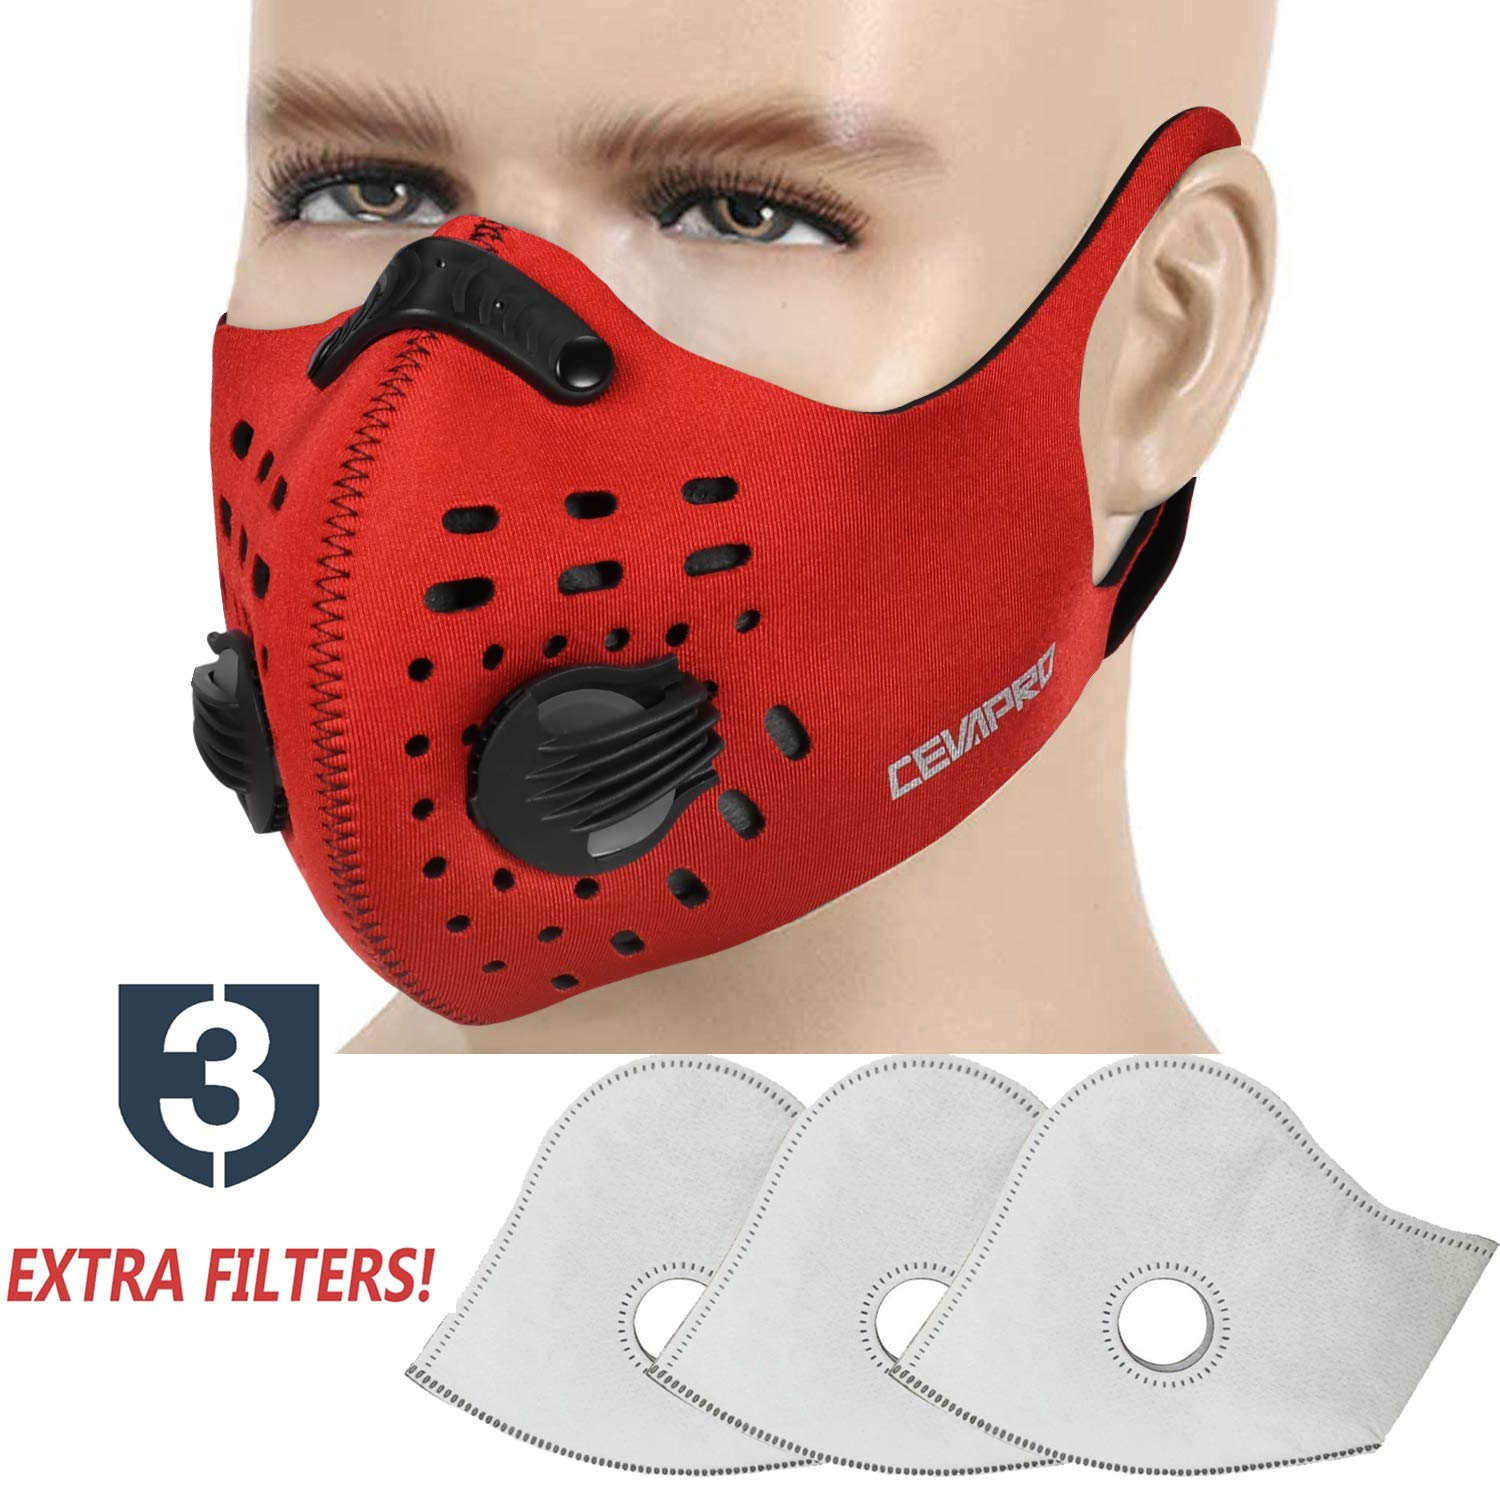 MoHo Dust Mask, Upgrade Version Activated Carbon Dustproof Mask Windproof Foggy Haze Anti-Dust Mask Motorcycle Bicycle Cycling Ski Half Face Mask for Outdoor Activities (1 Set Red) by MoHo (Image #1)